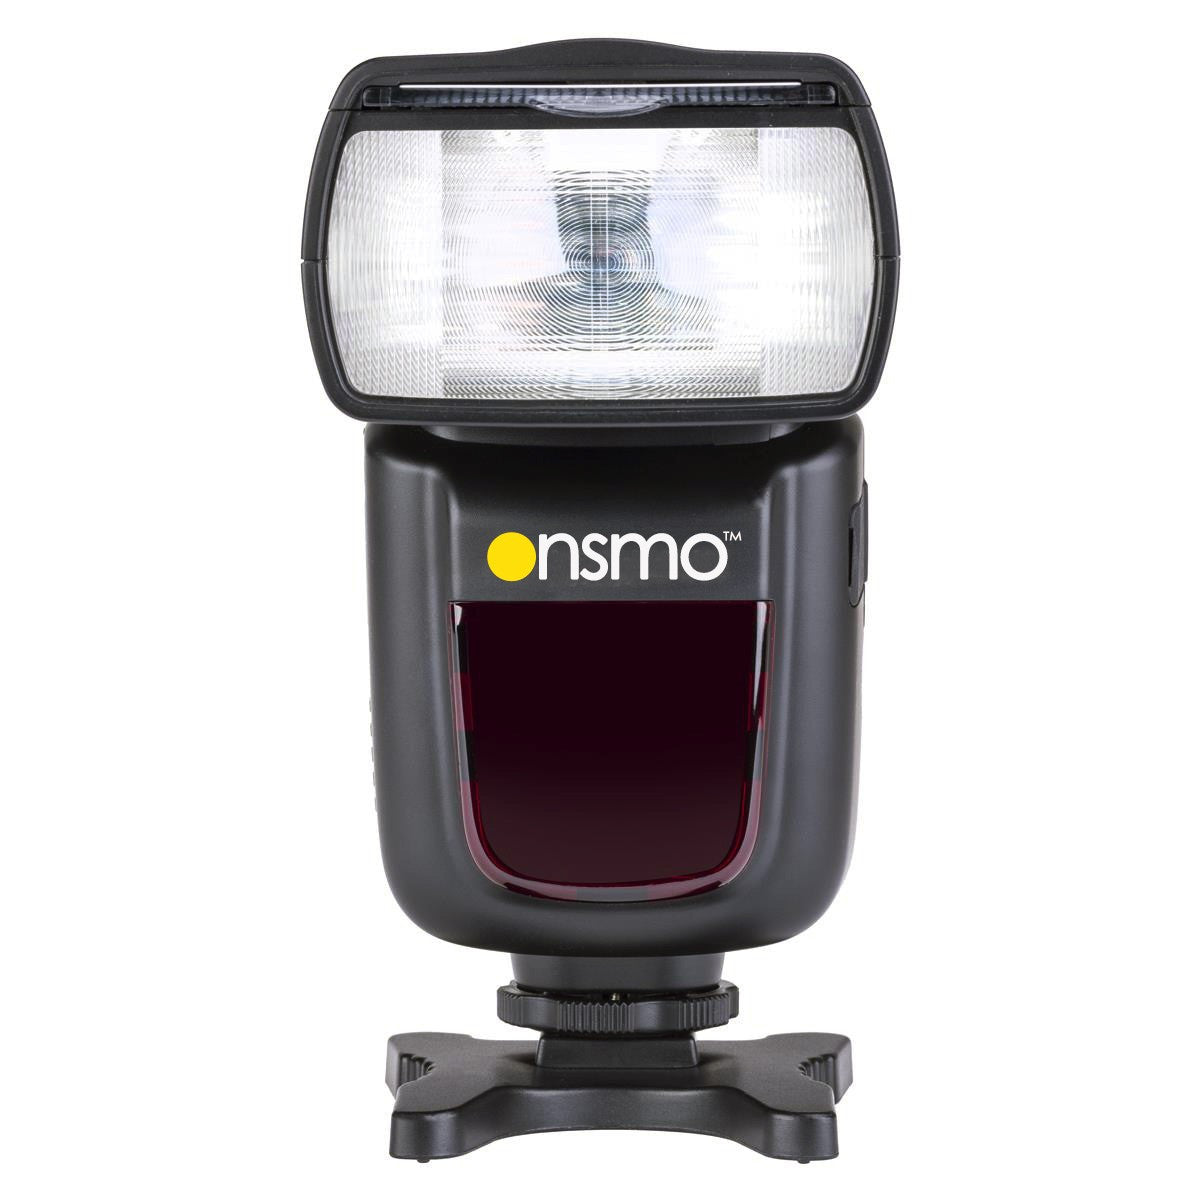 Onsmo X700 Speedlight (Godox TT600) ( Manual ) Combo B ( 2 x X700 + 1 x Speed X Trigger )